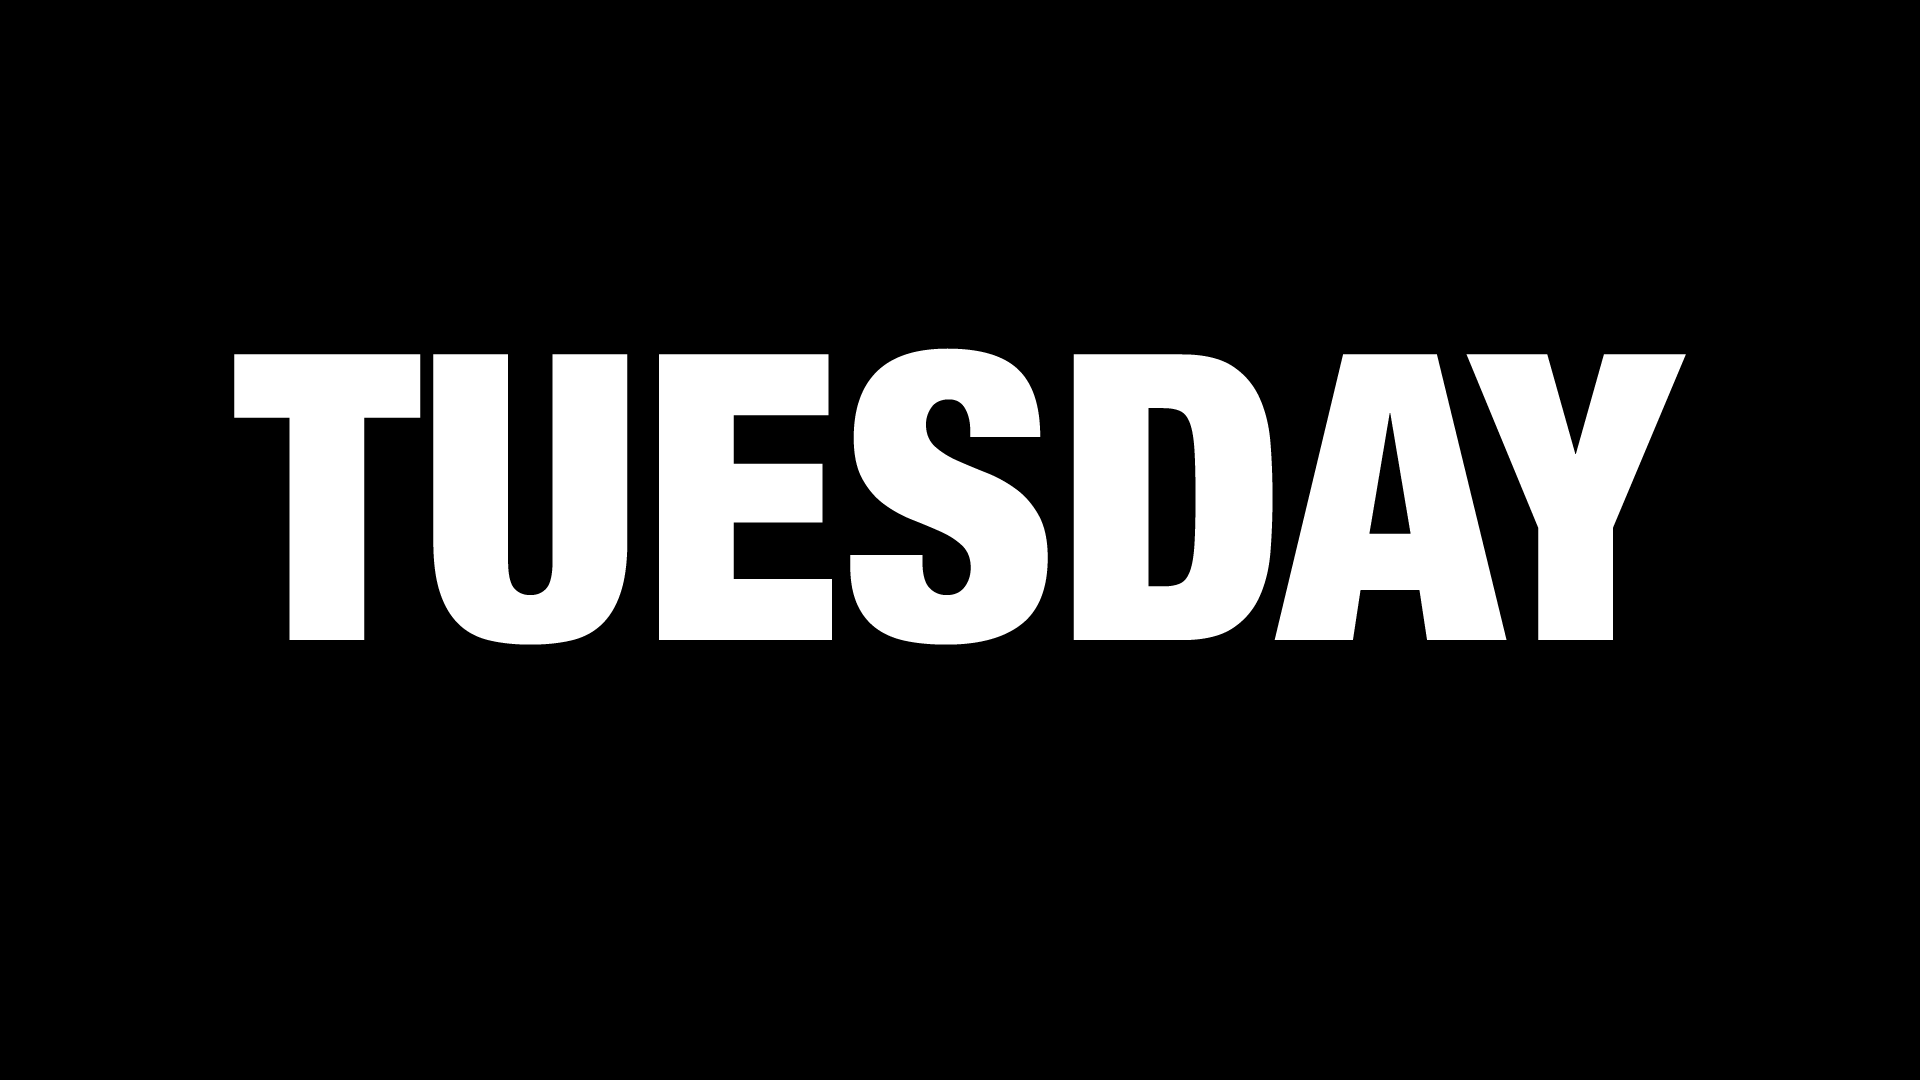 Songs With Tuesday In The Title